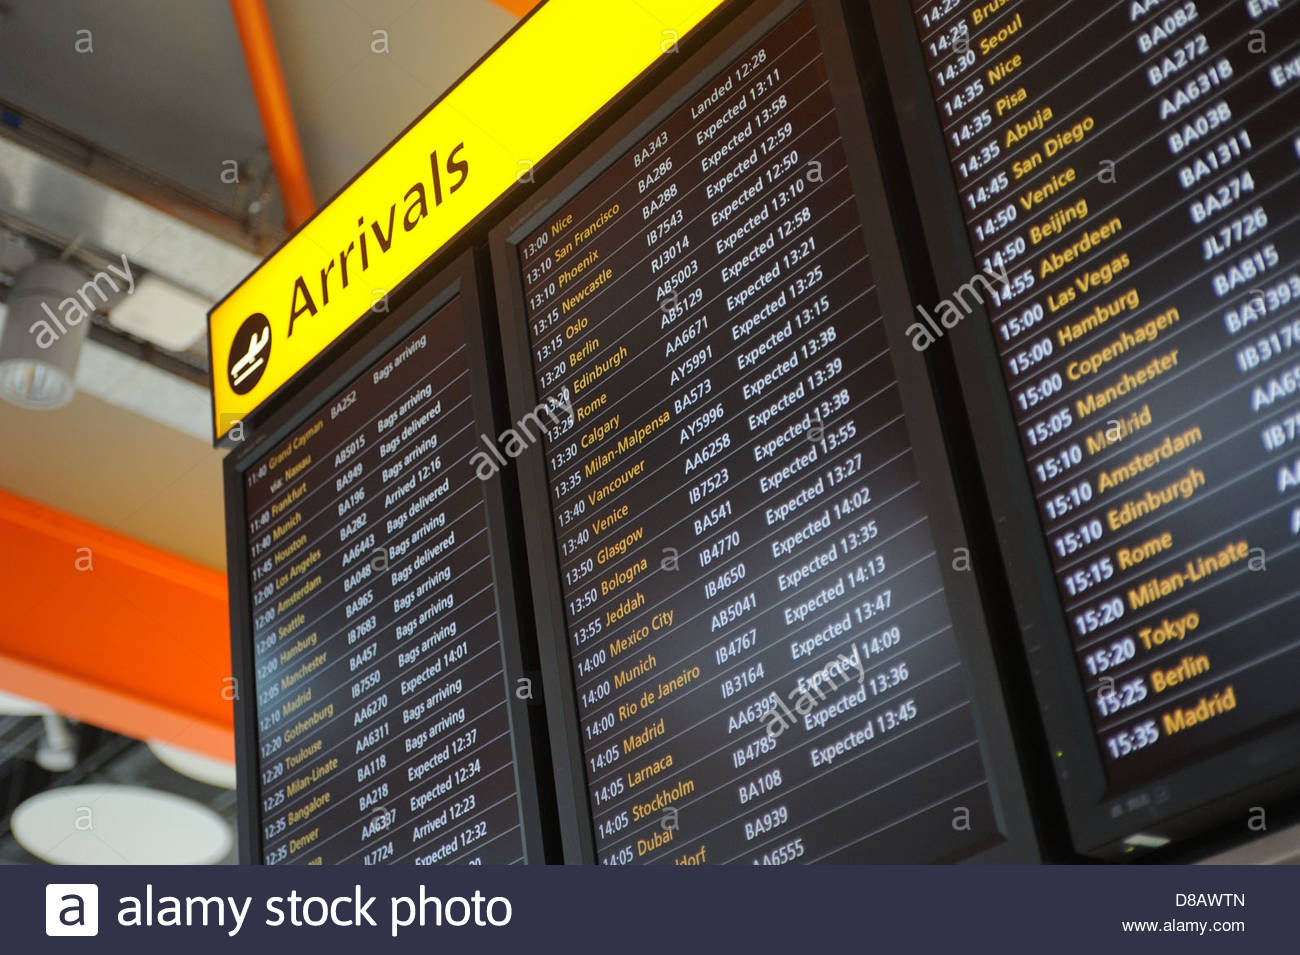 Heathrow UK Arrivals board at Terminal 5. - Stock Image